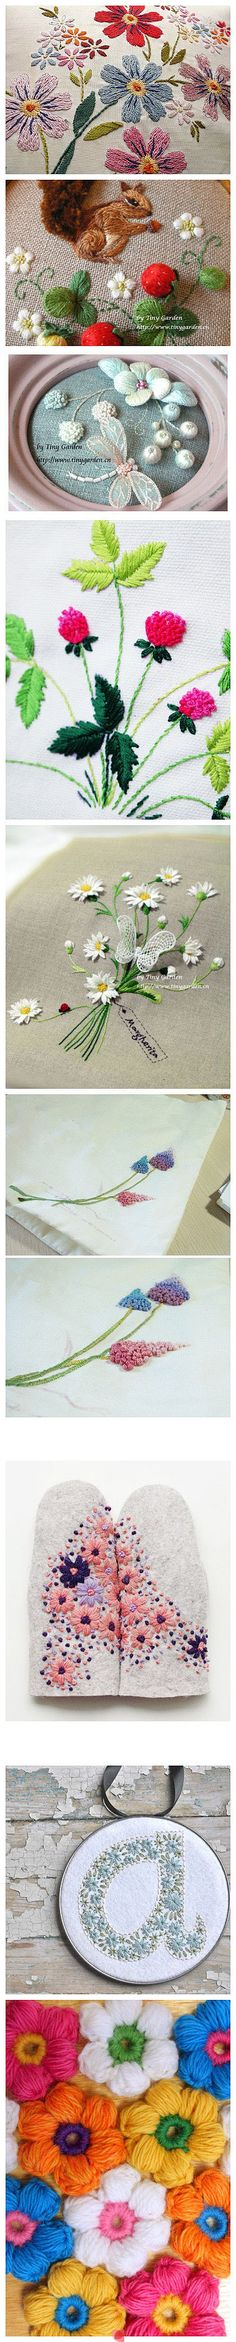 A variety of lovely embroidery stitches...